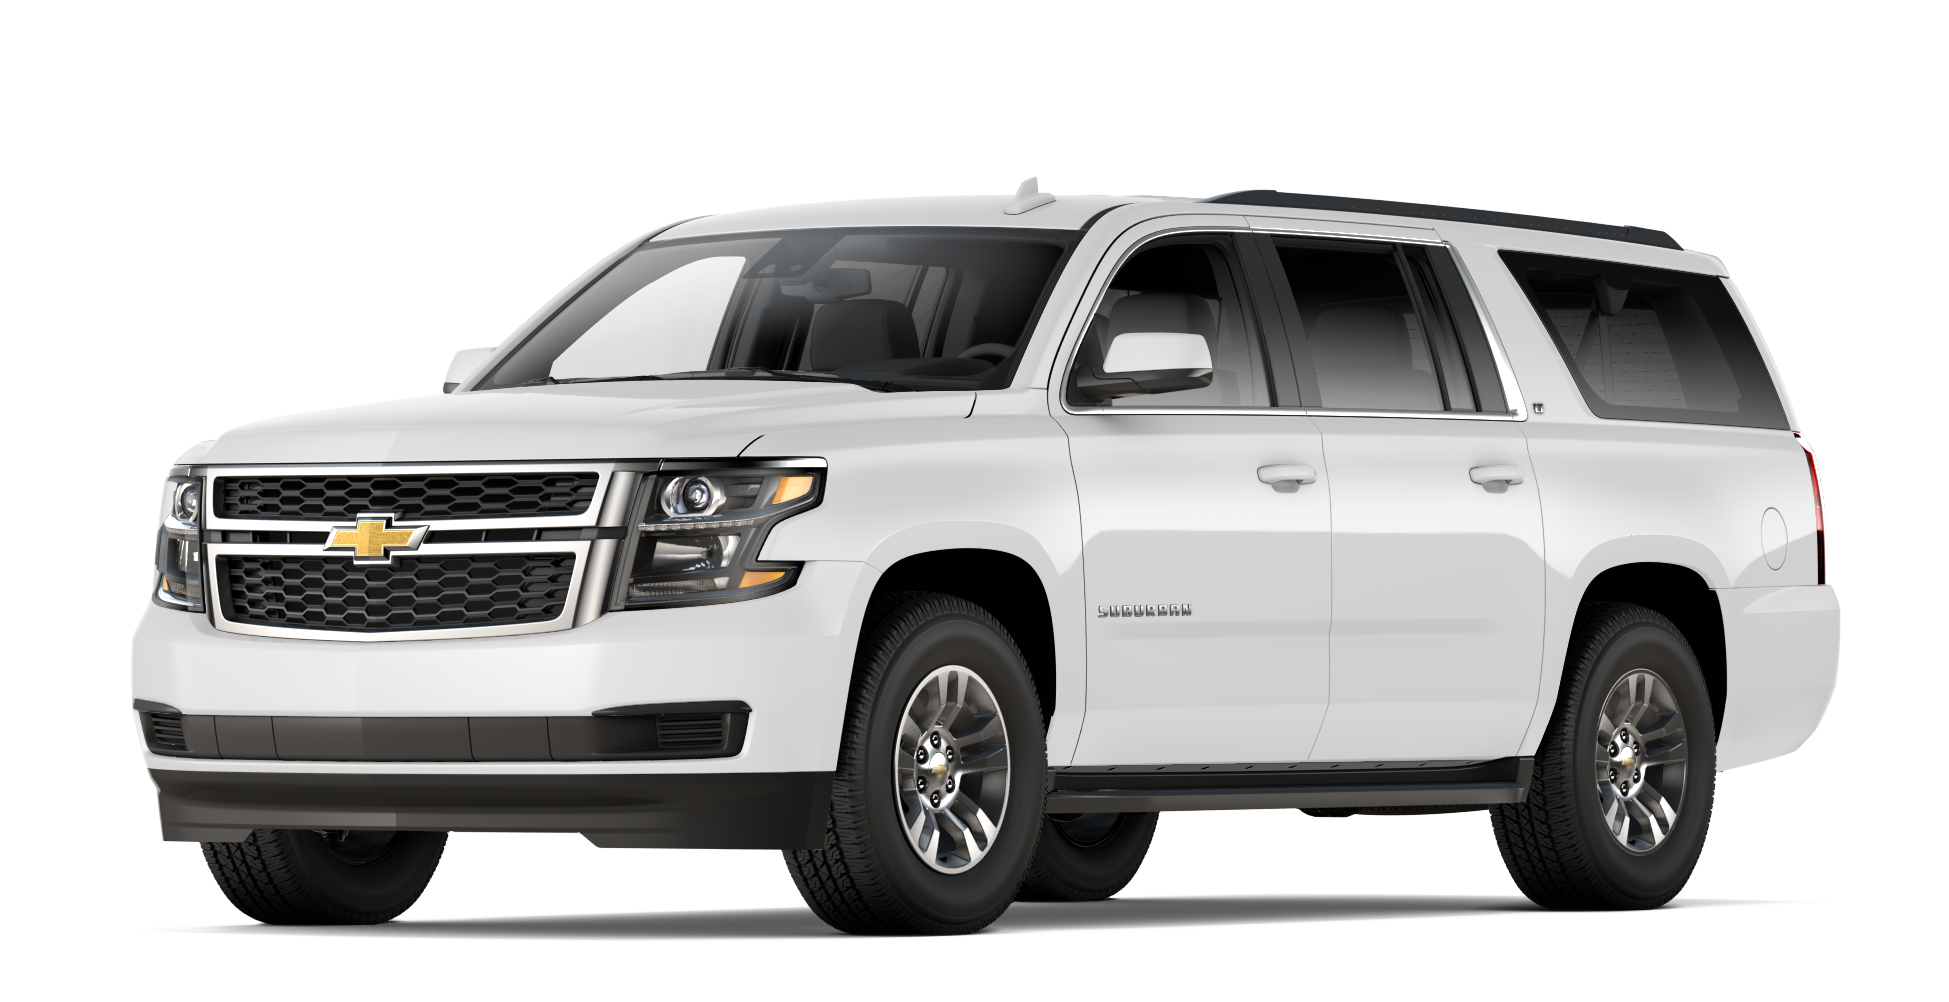 2017 chevy suburban albany ny depaula chevrolet. Black Bedroom Furniture Sets. Home Design Ideas